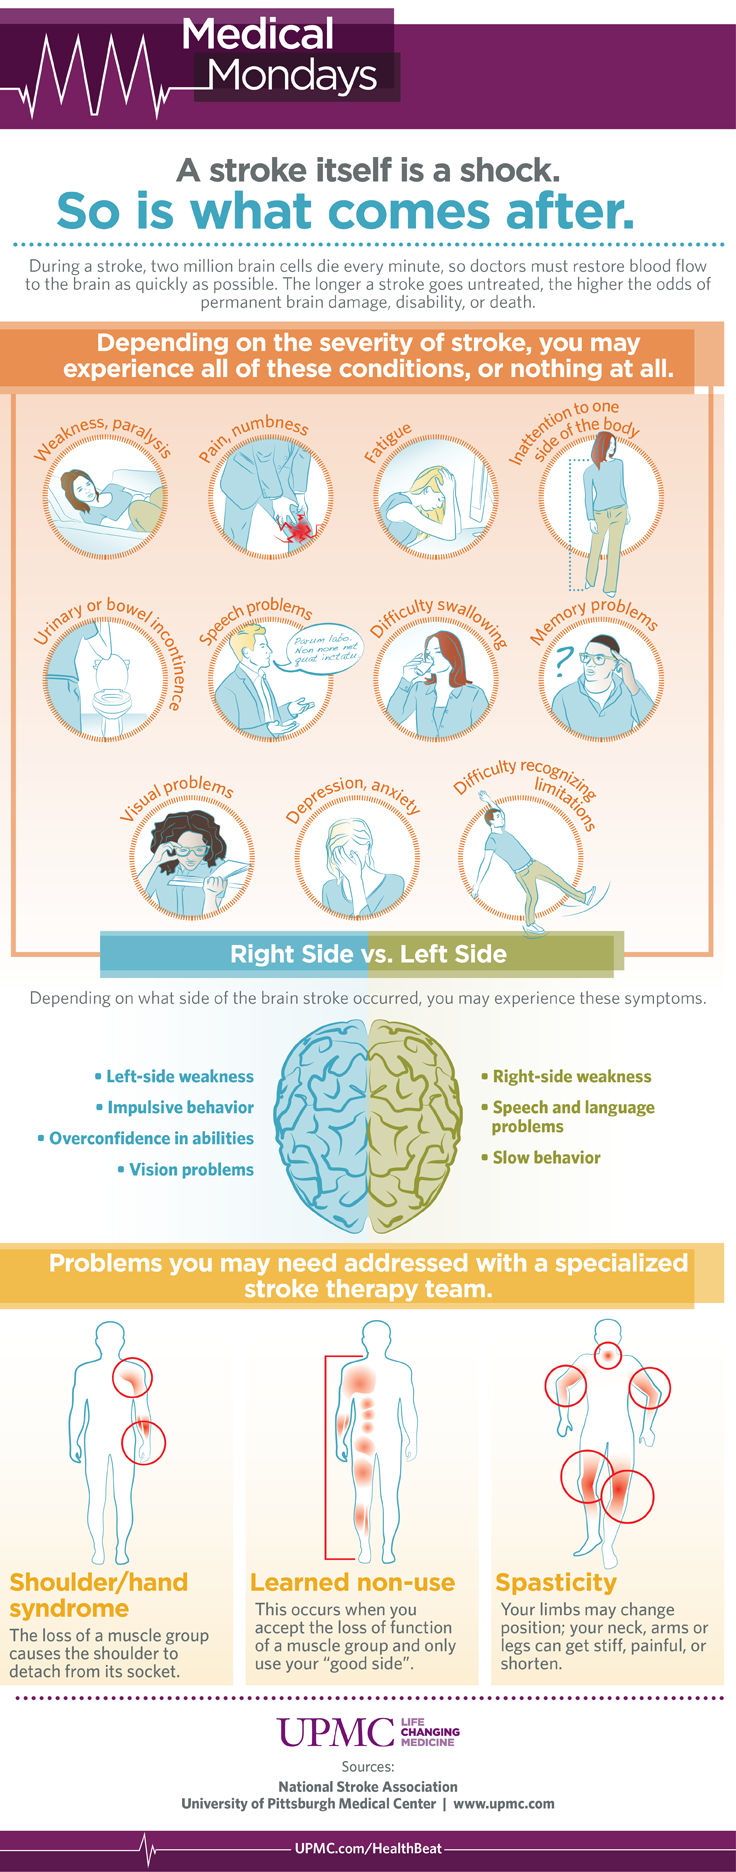 stroke medical mondays infographic